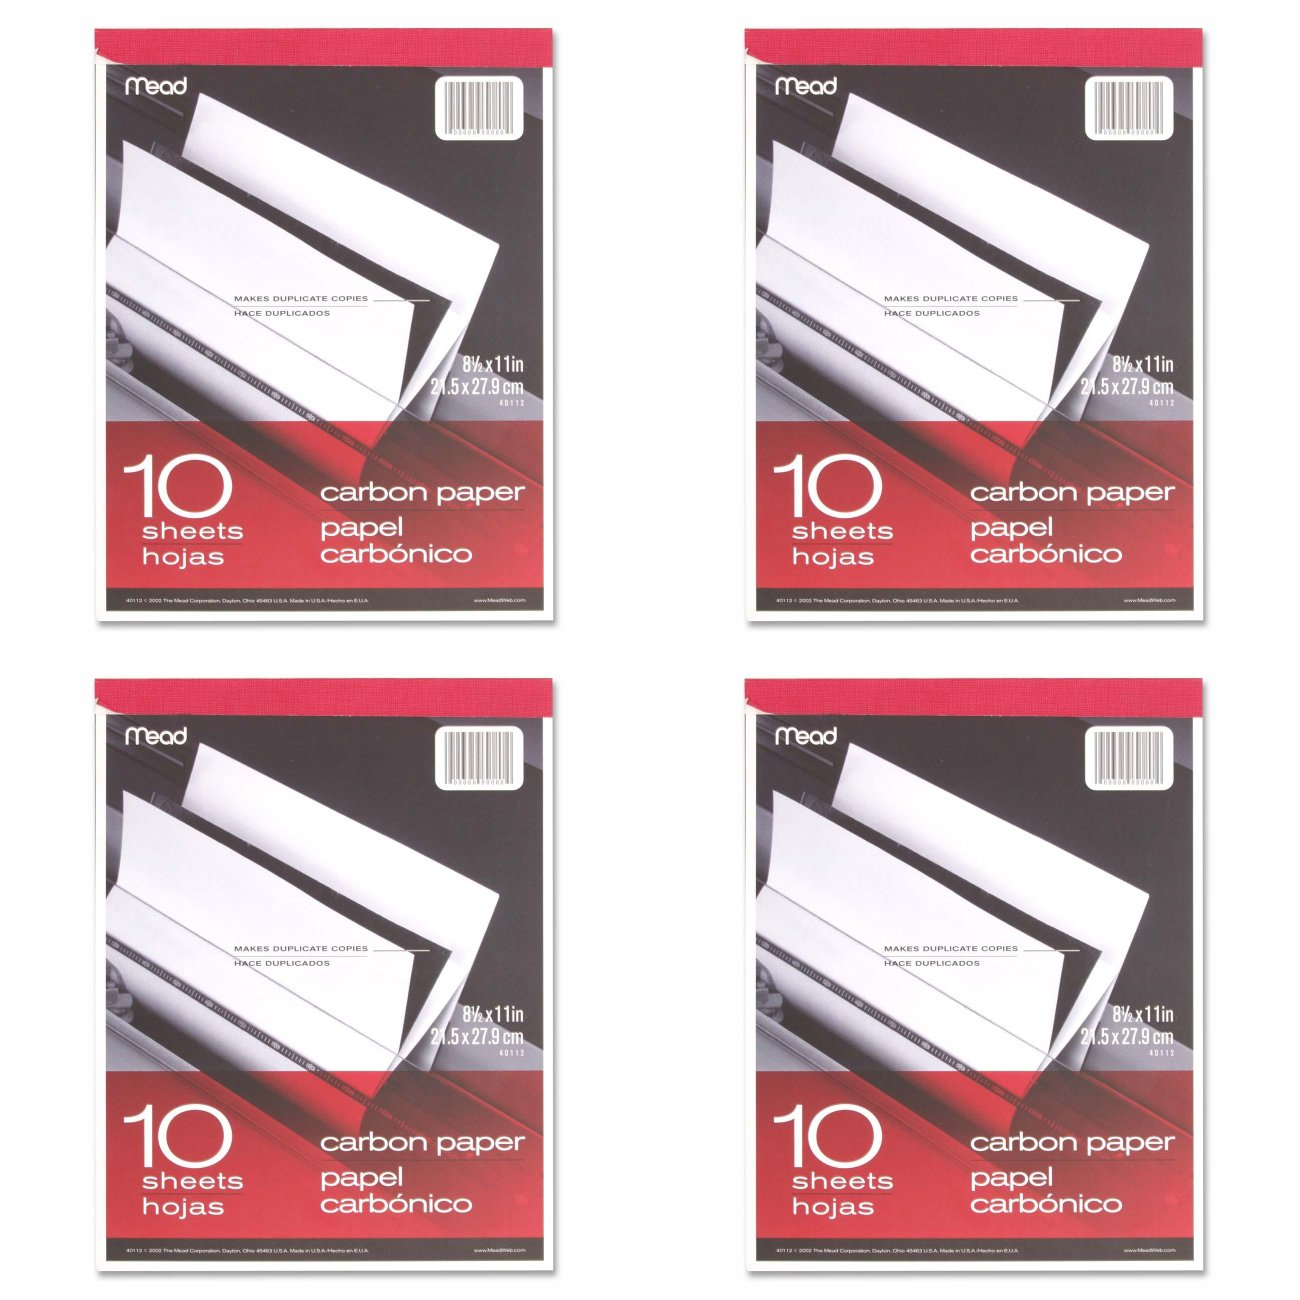 Meadwestvaco 40112 10 Count 8.5'' X 11'' Carbon Paper Tablet